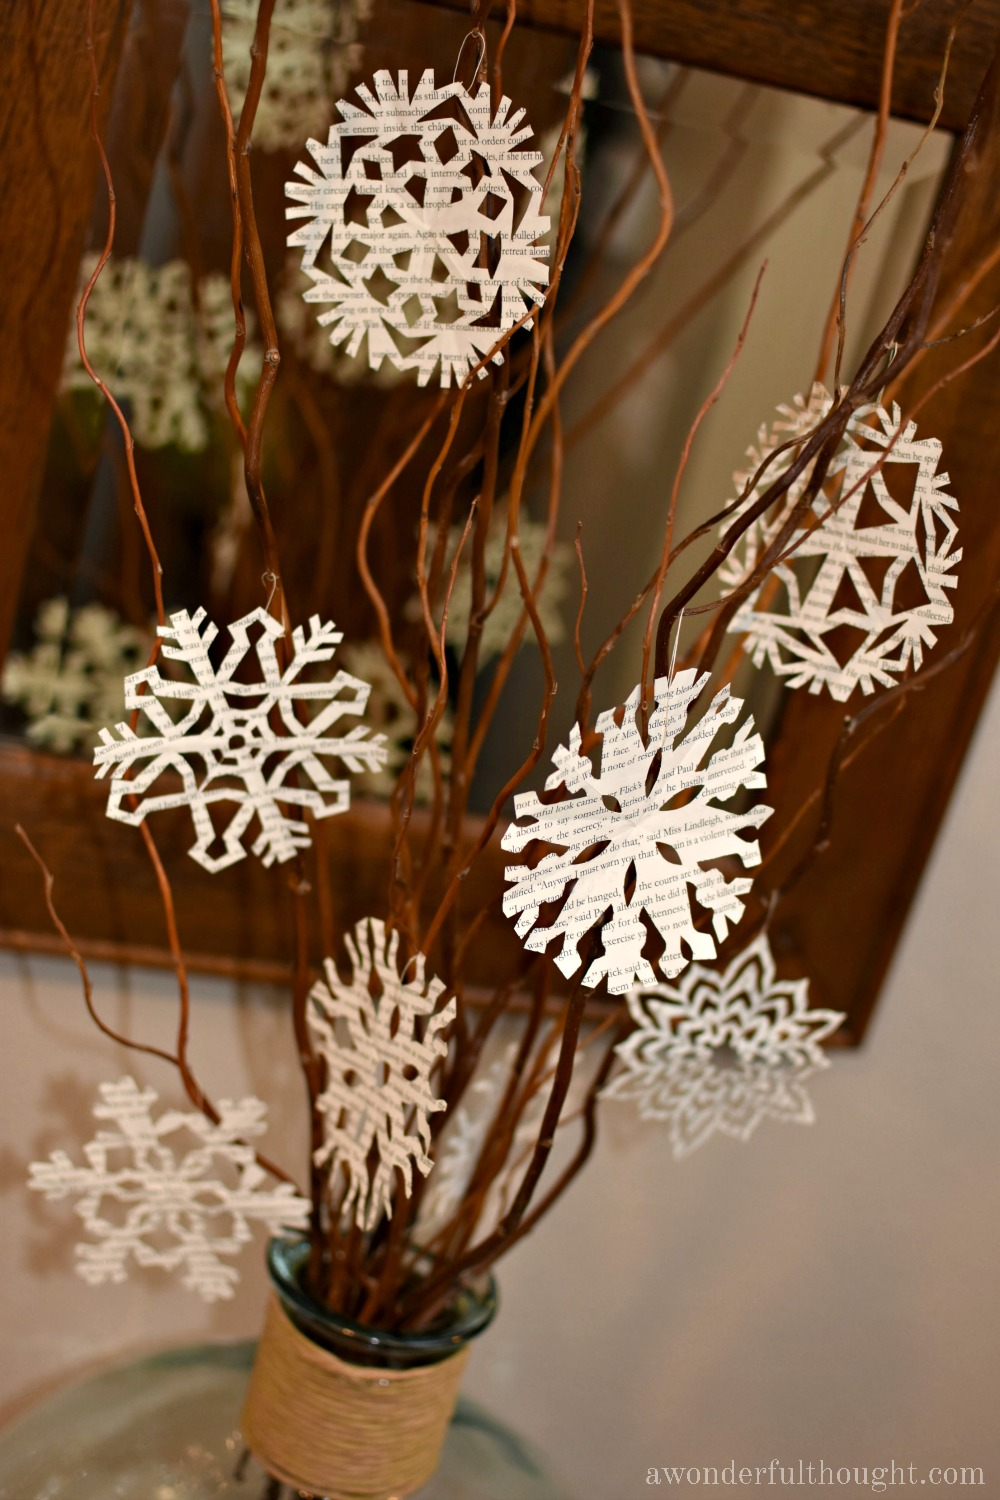 How to Make an Easy Snowflake Tree   awonderfulthought.com